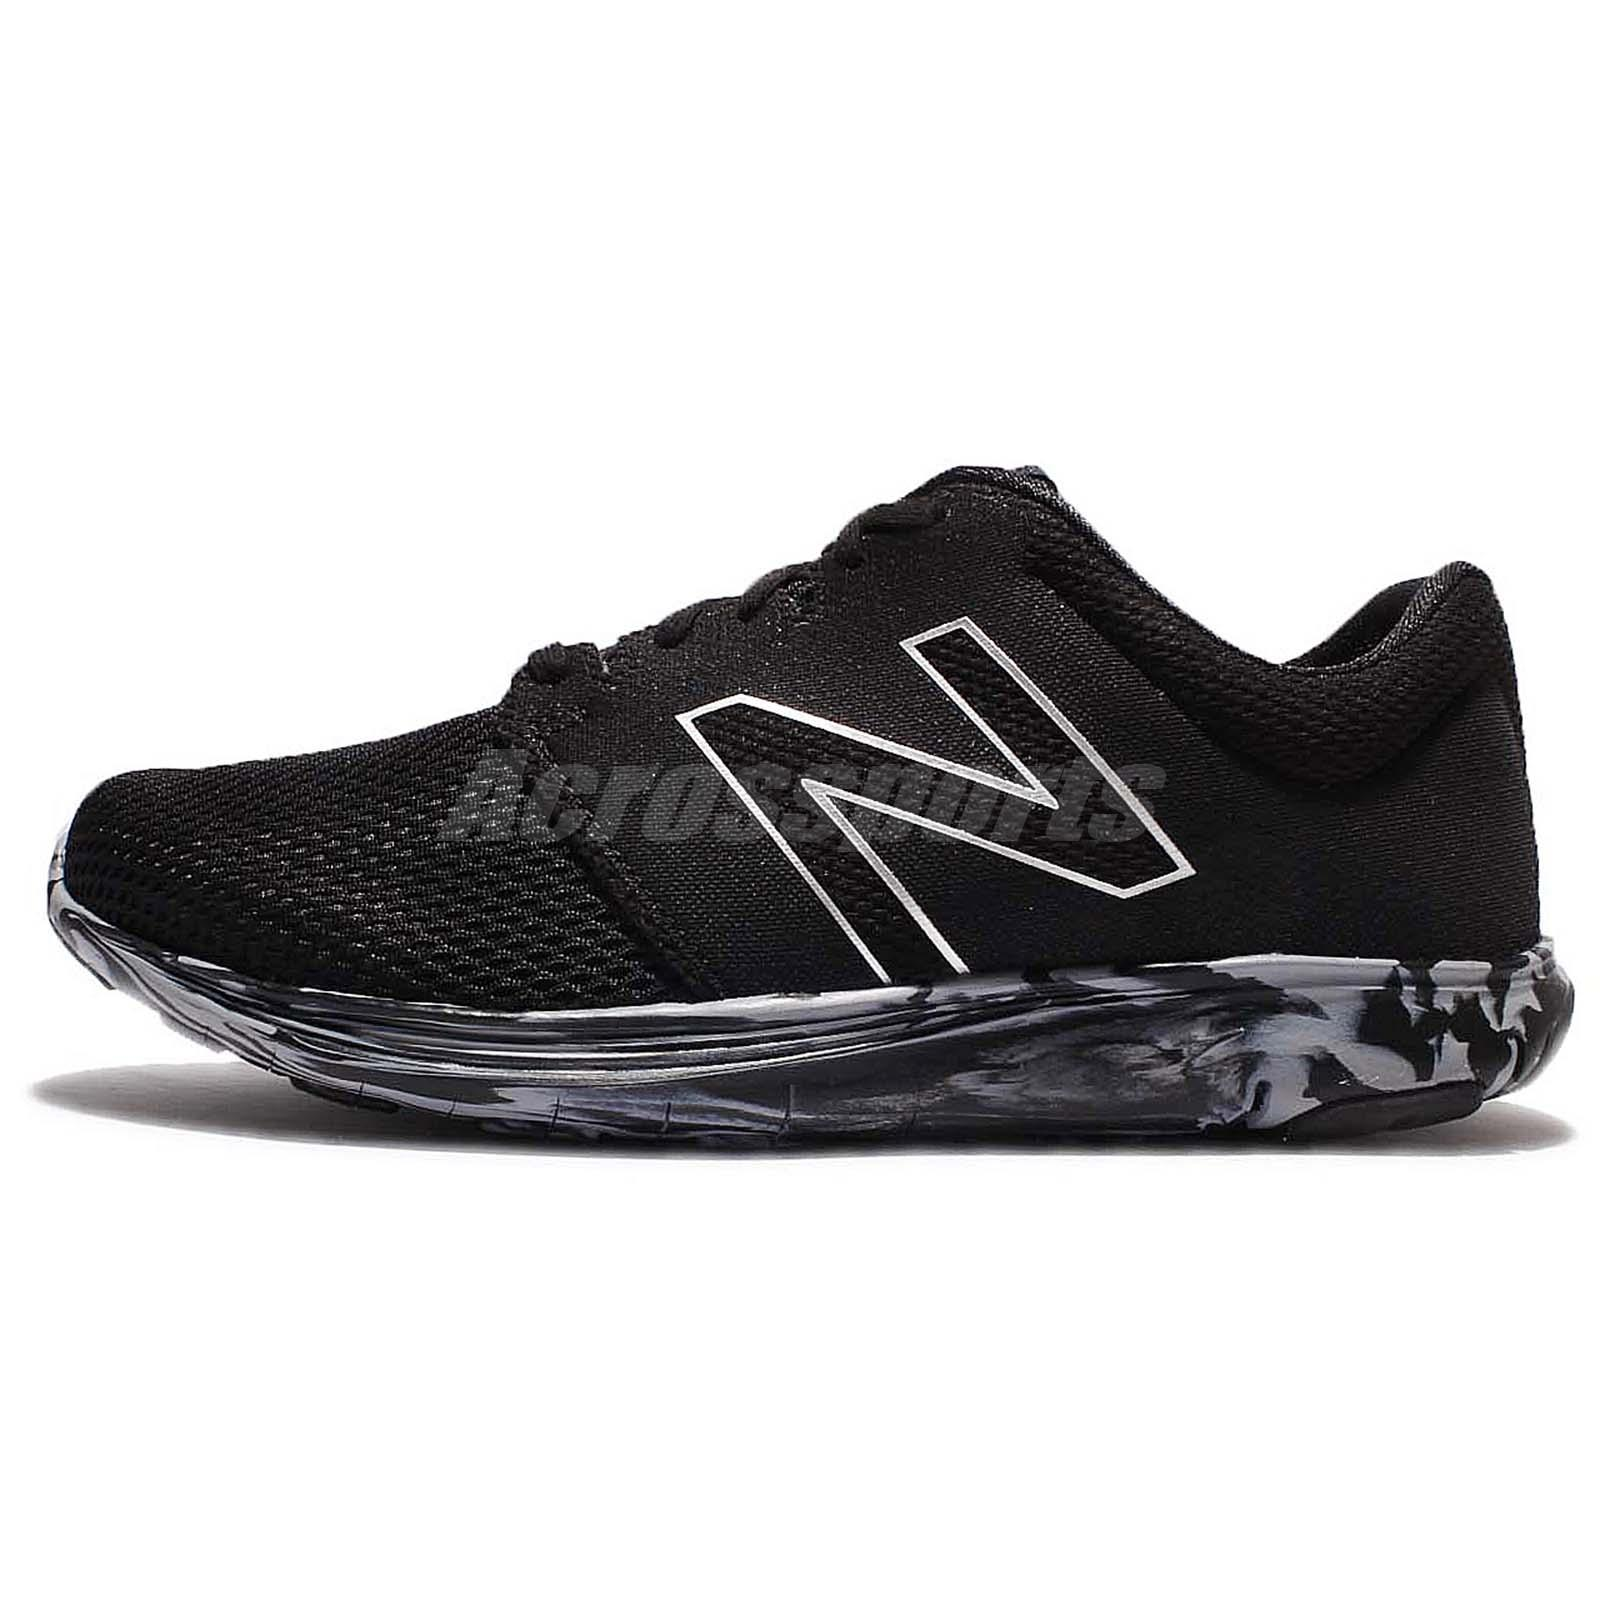 68b64c0632 Details about New Balance M530RK2 2E Wide Black Grey Camo Men Running Shoes  M530RK22E